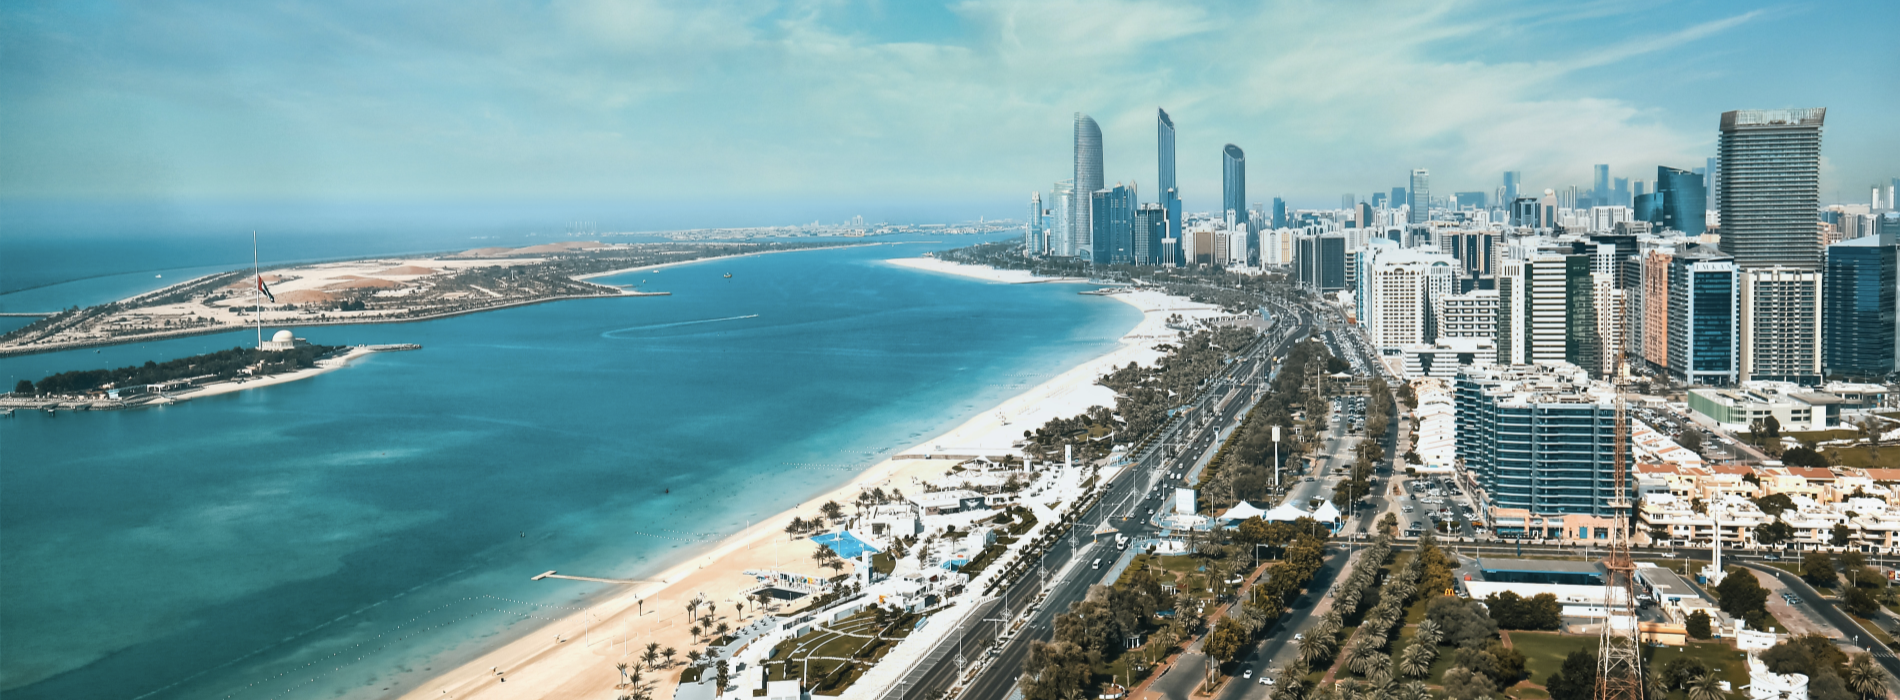 Abu Dhabi best place to live